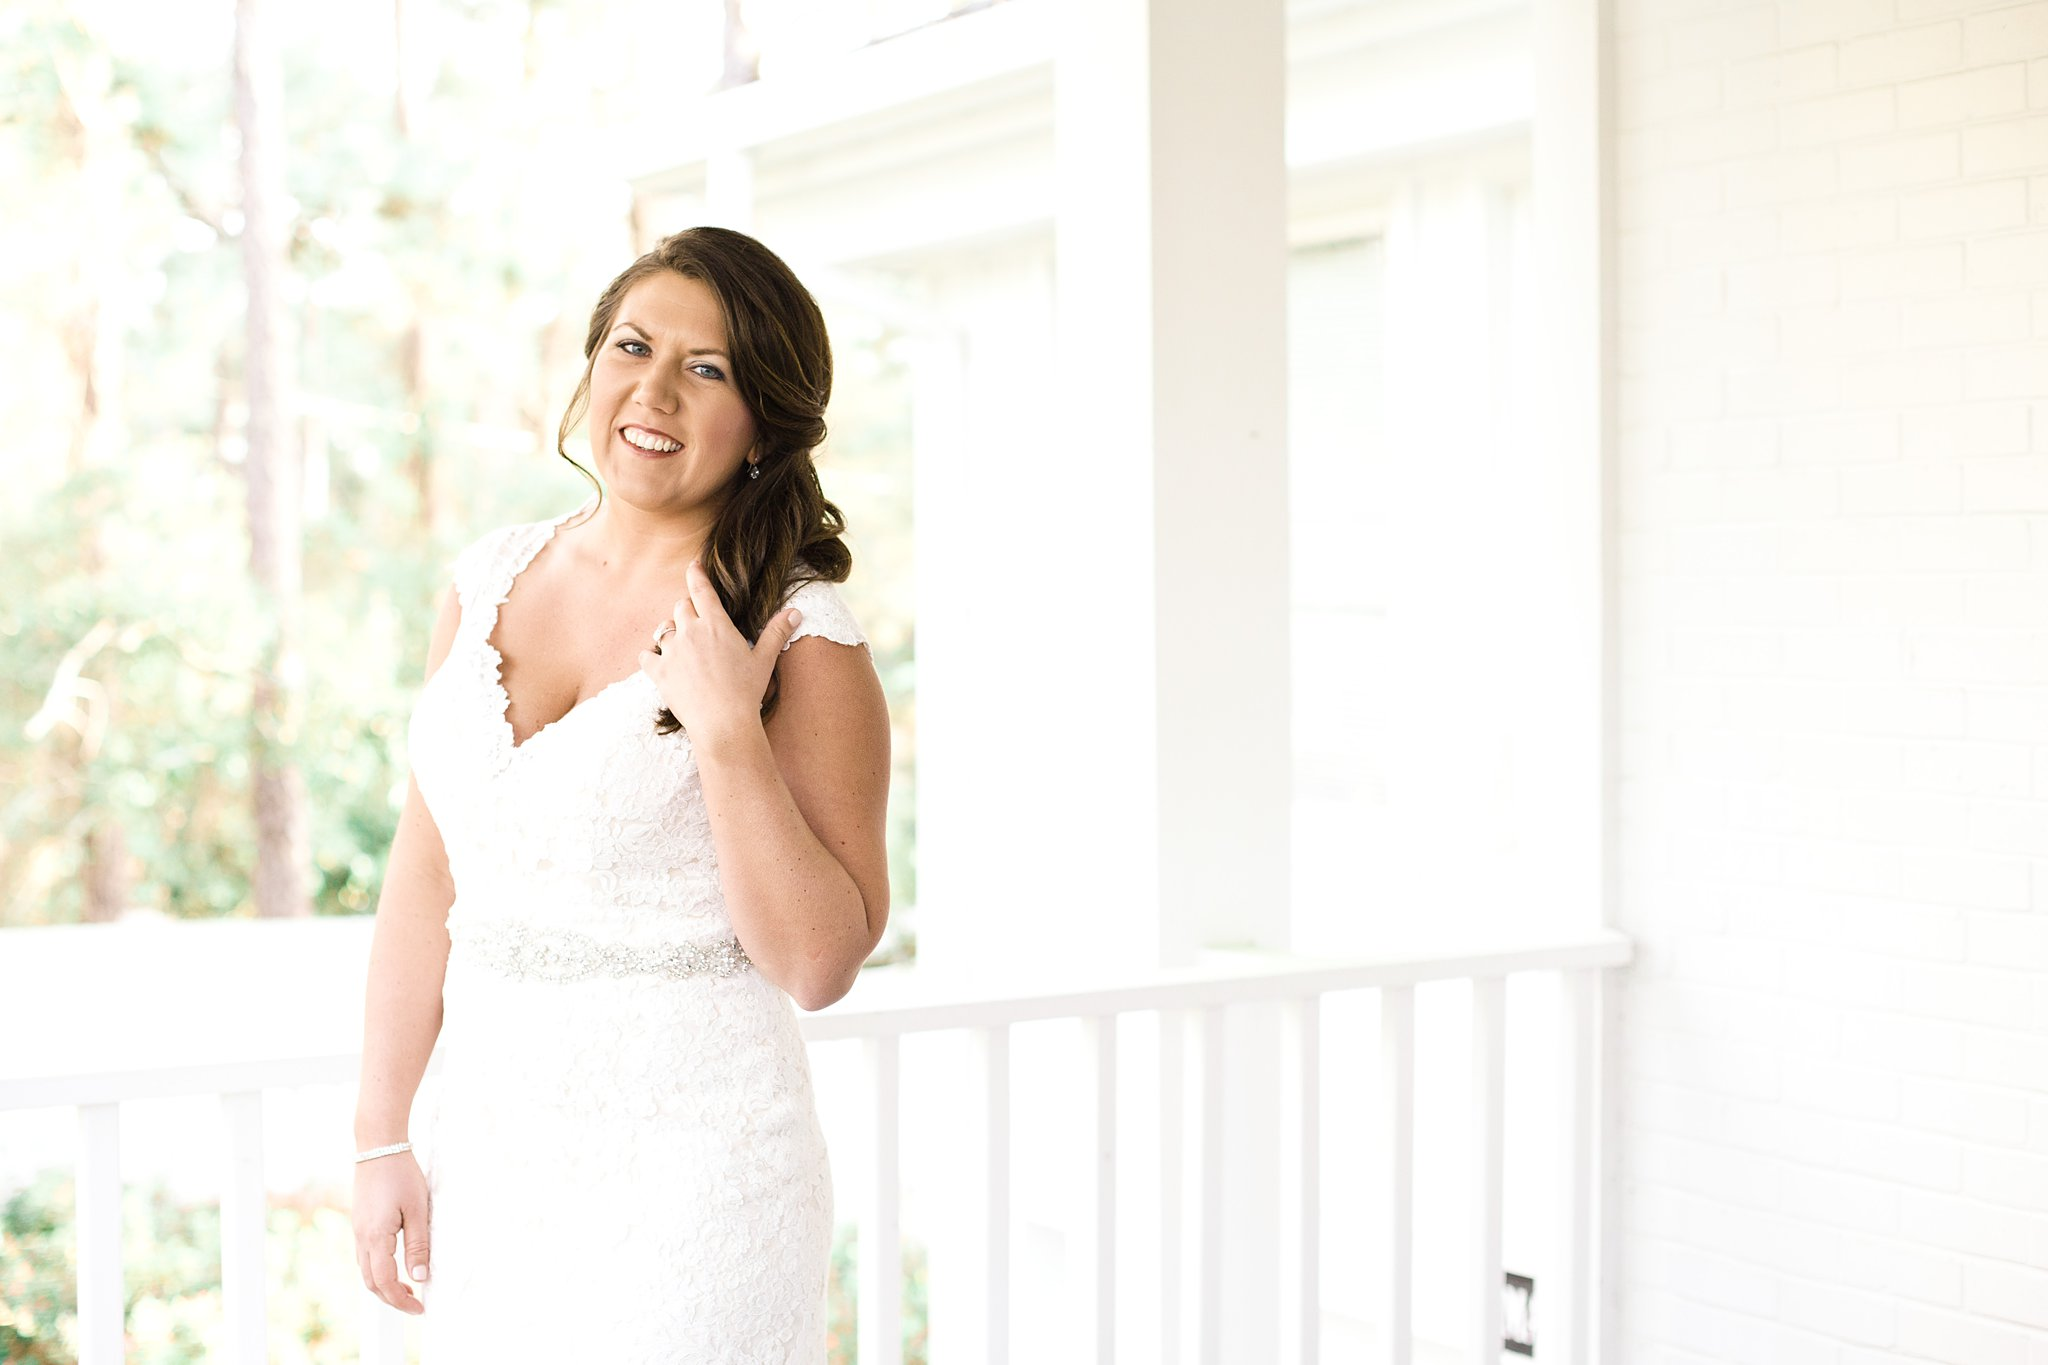 litchfield-golf-country-club-bridal-session-pawleys-island-sc-photos_0152.jpg